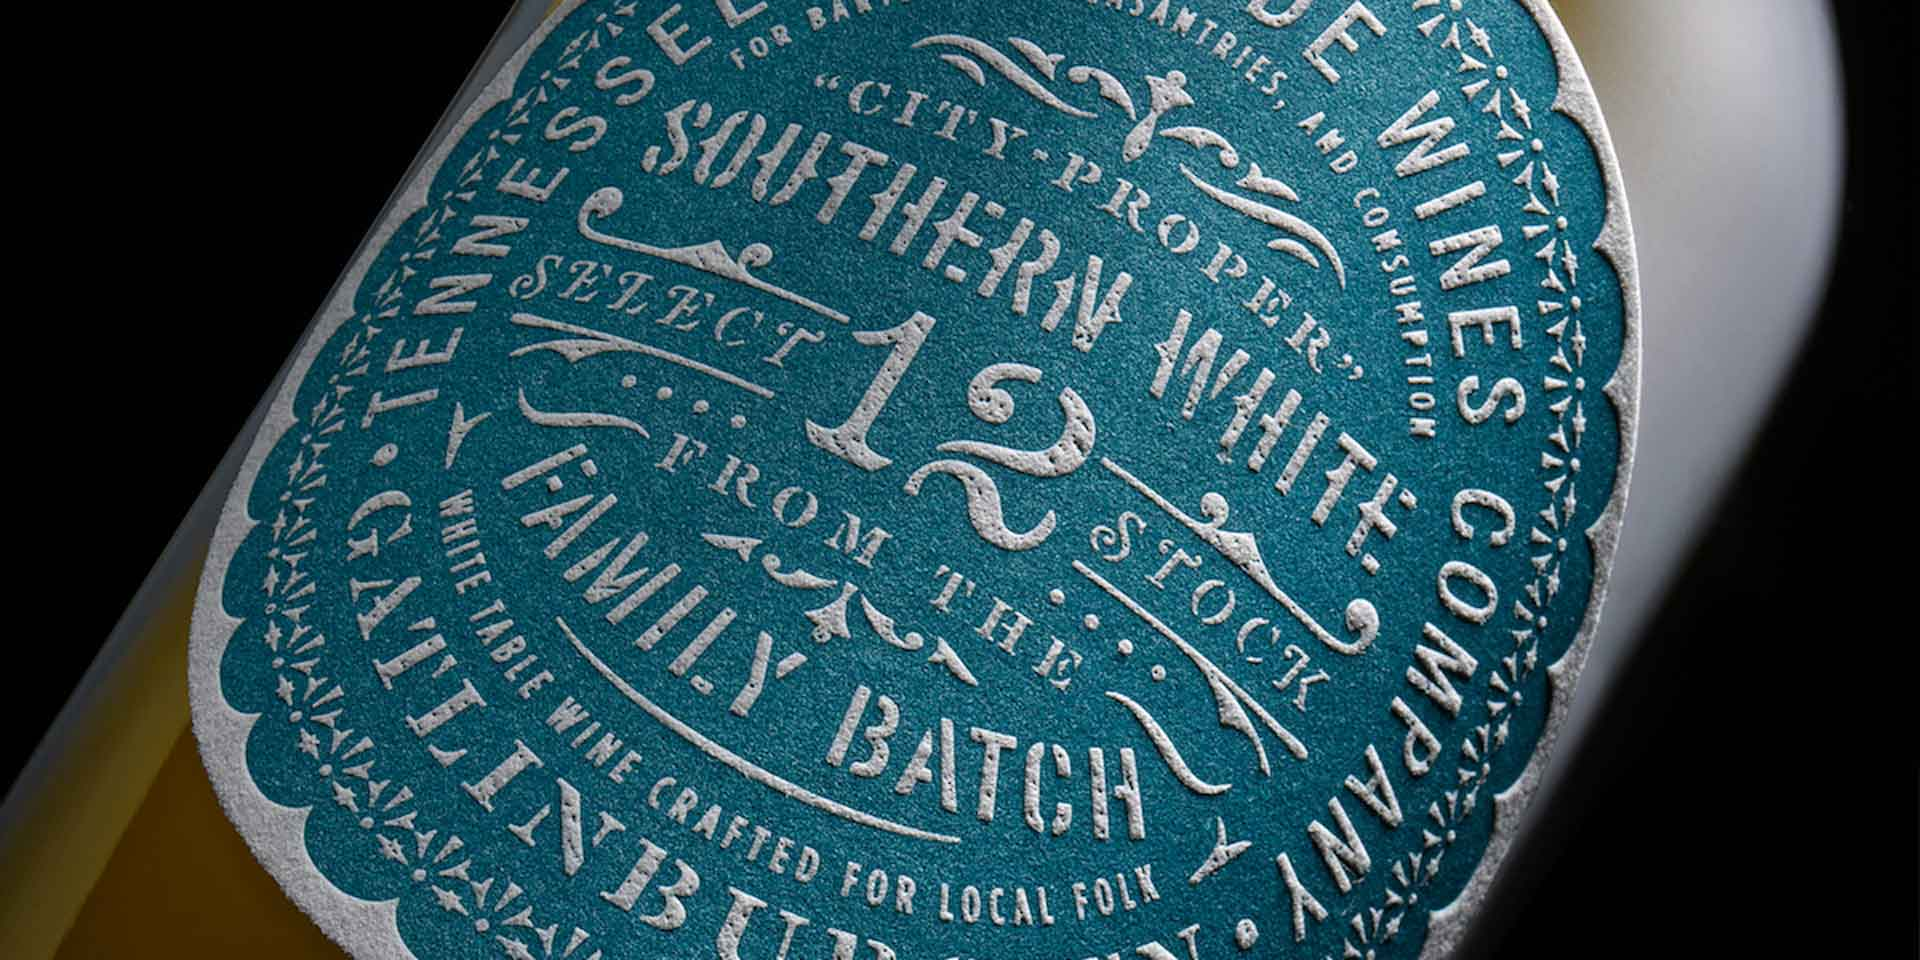 Southern-white-by-Chad-Michael-Studio